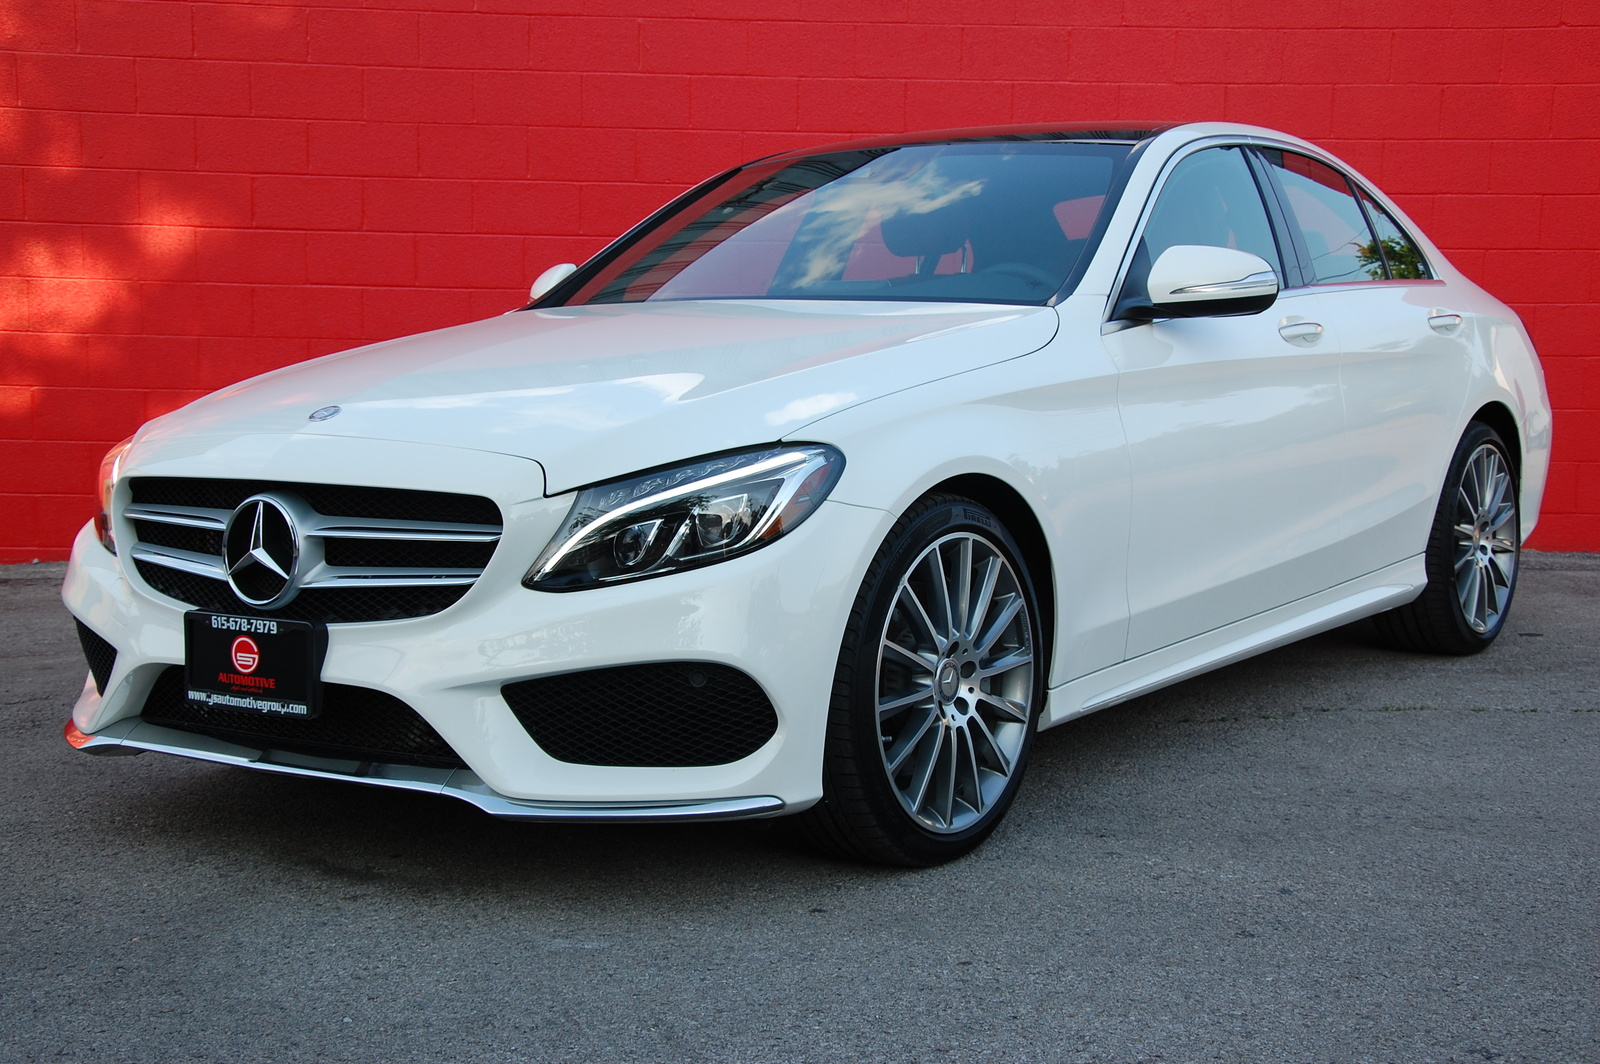 New 2014 2015 Mercedes Benz C Class For Sale Cargurus